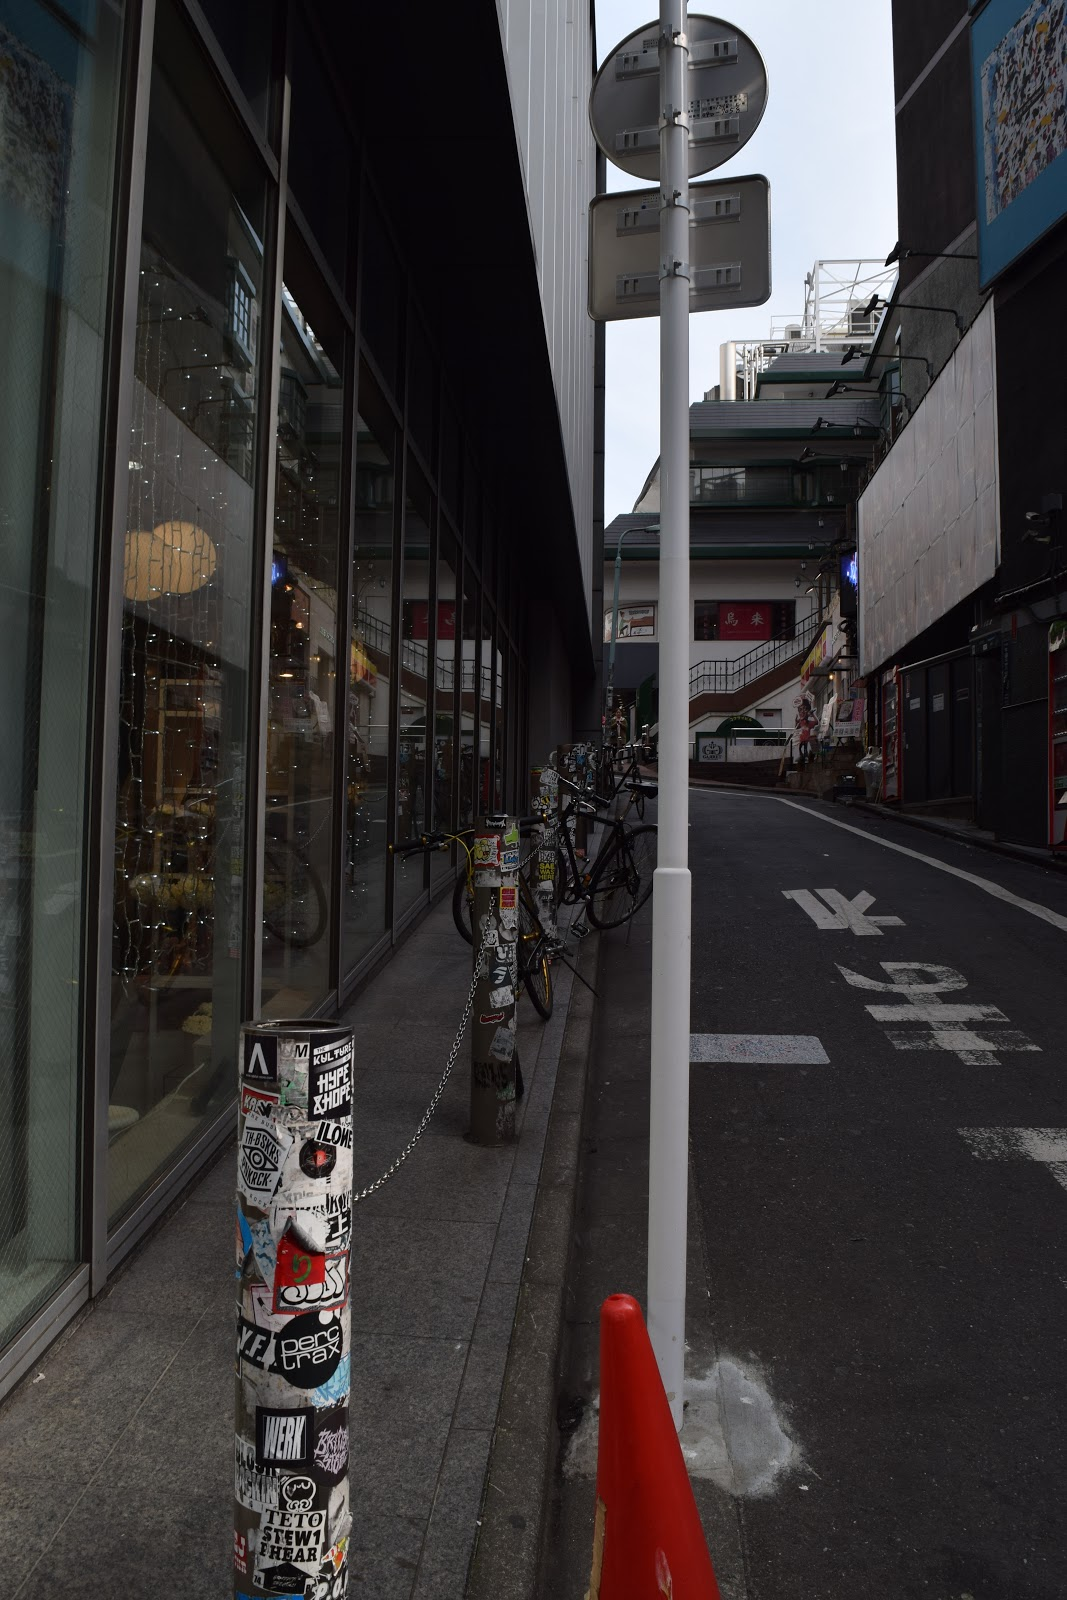 Shibuya backstreet with stickers on traffic sign and a traffic cone